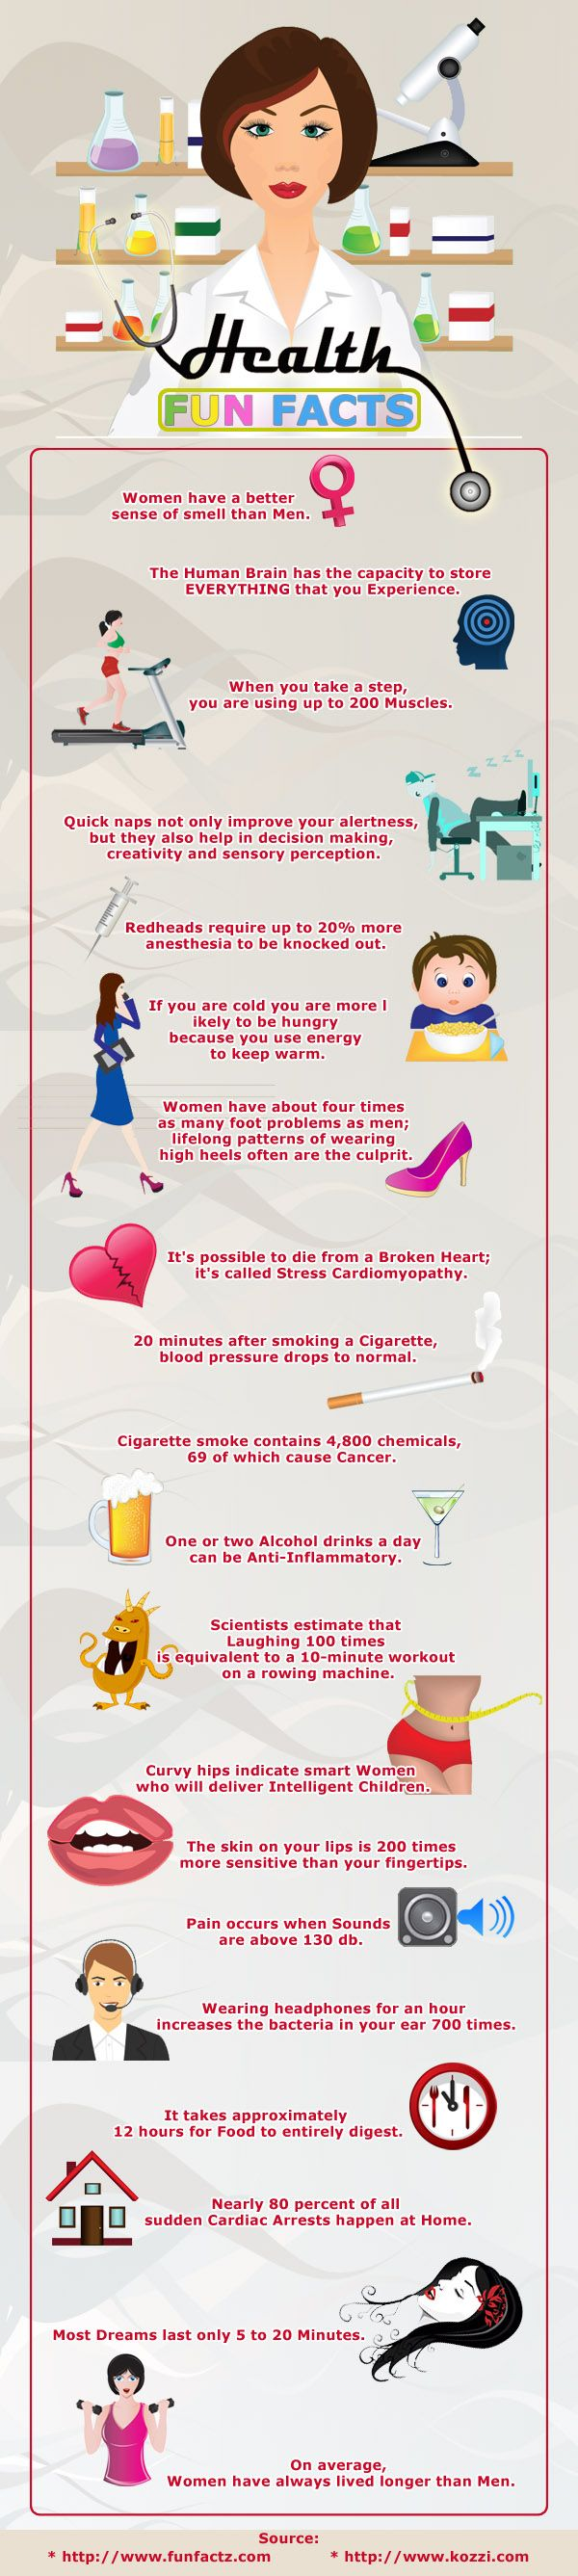 Awesome Health Facts!